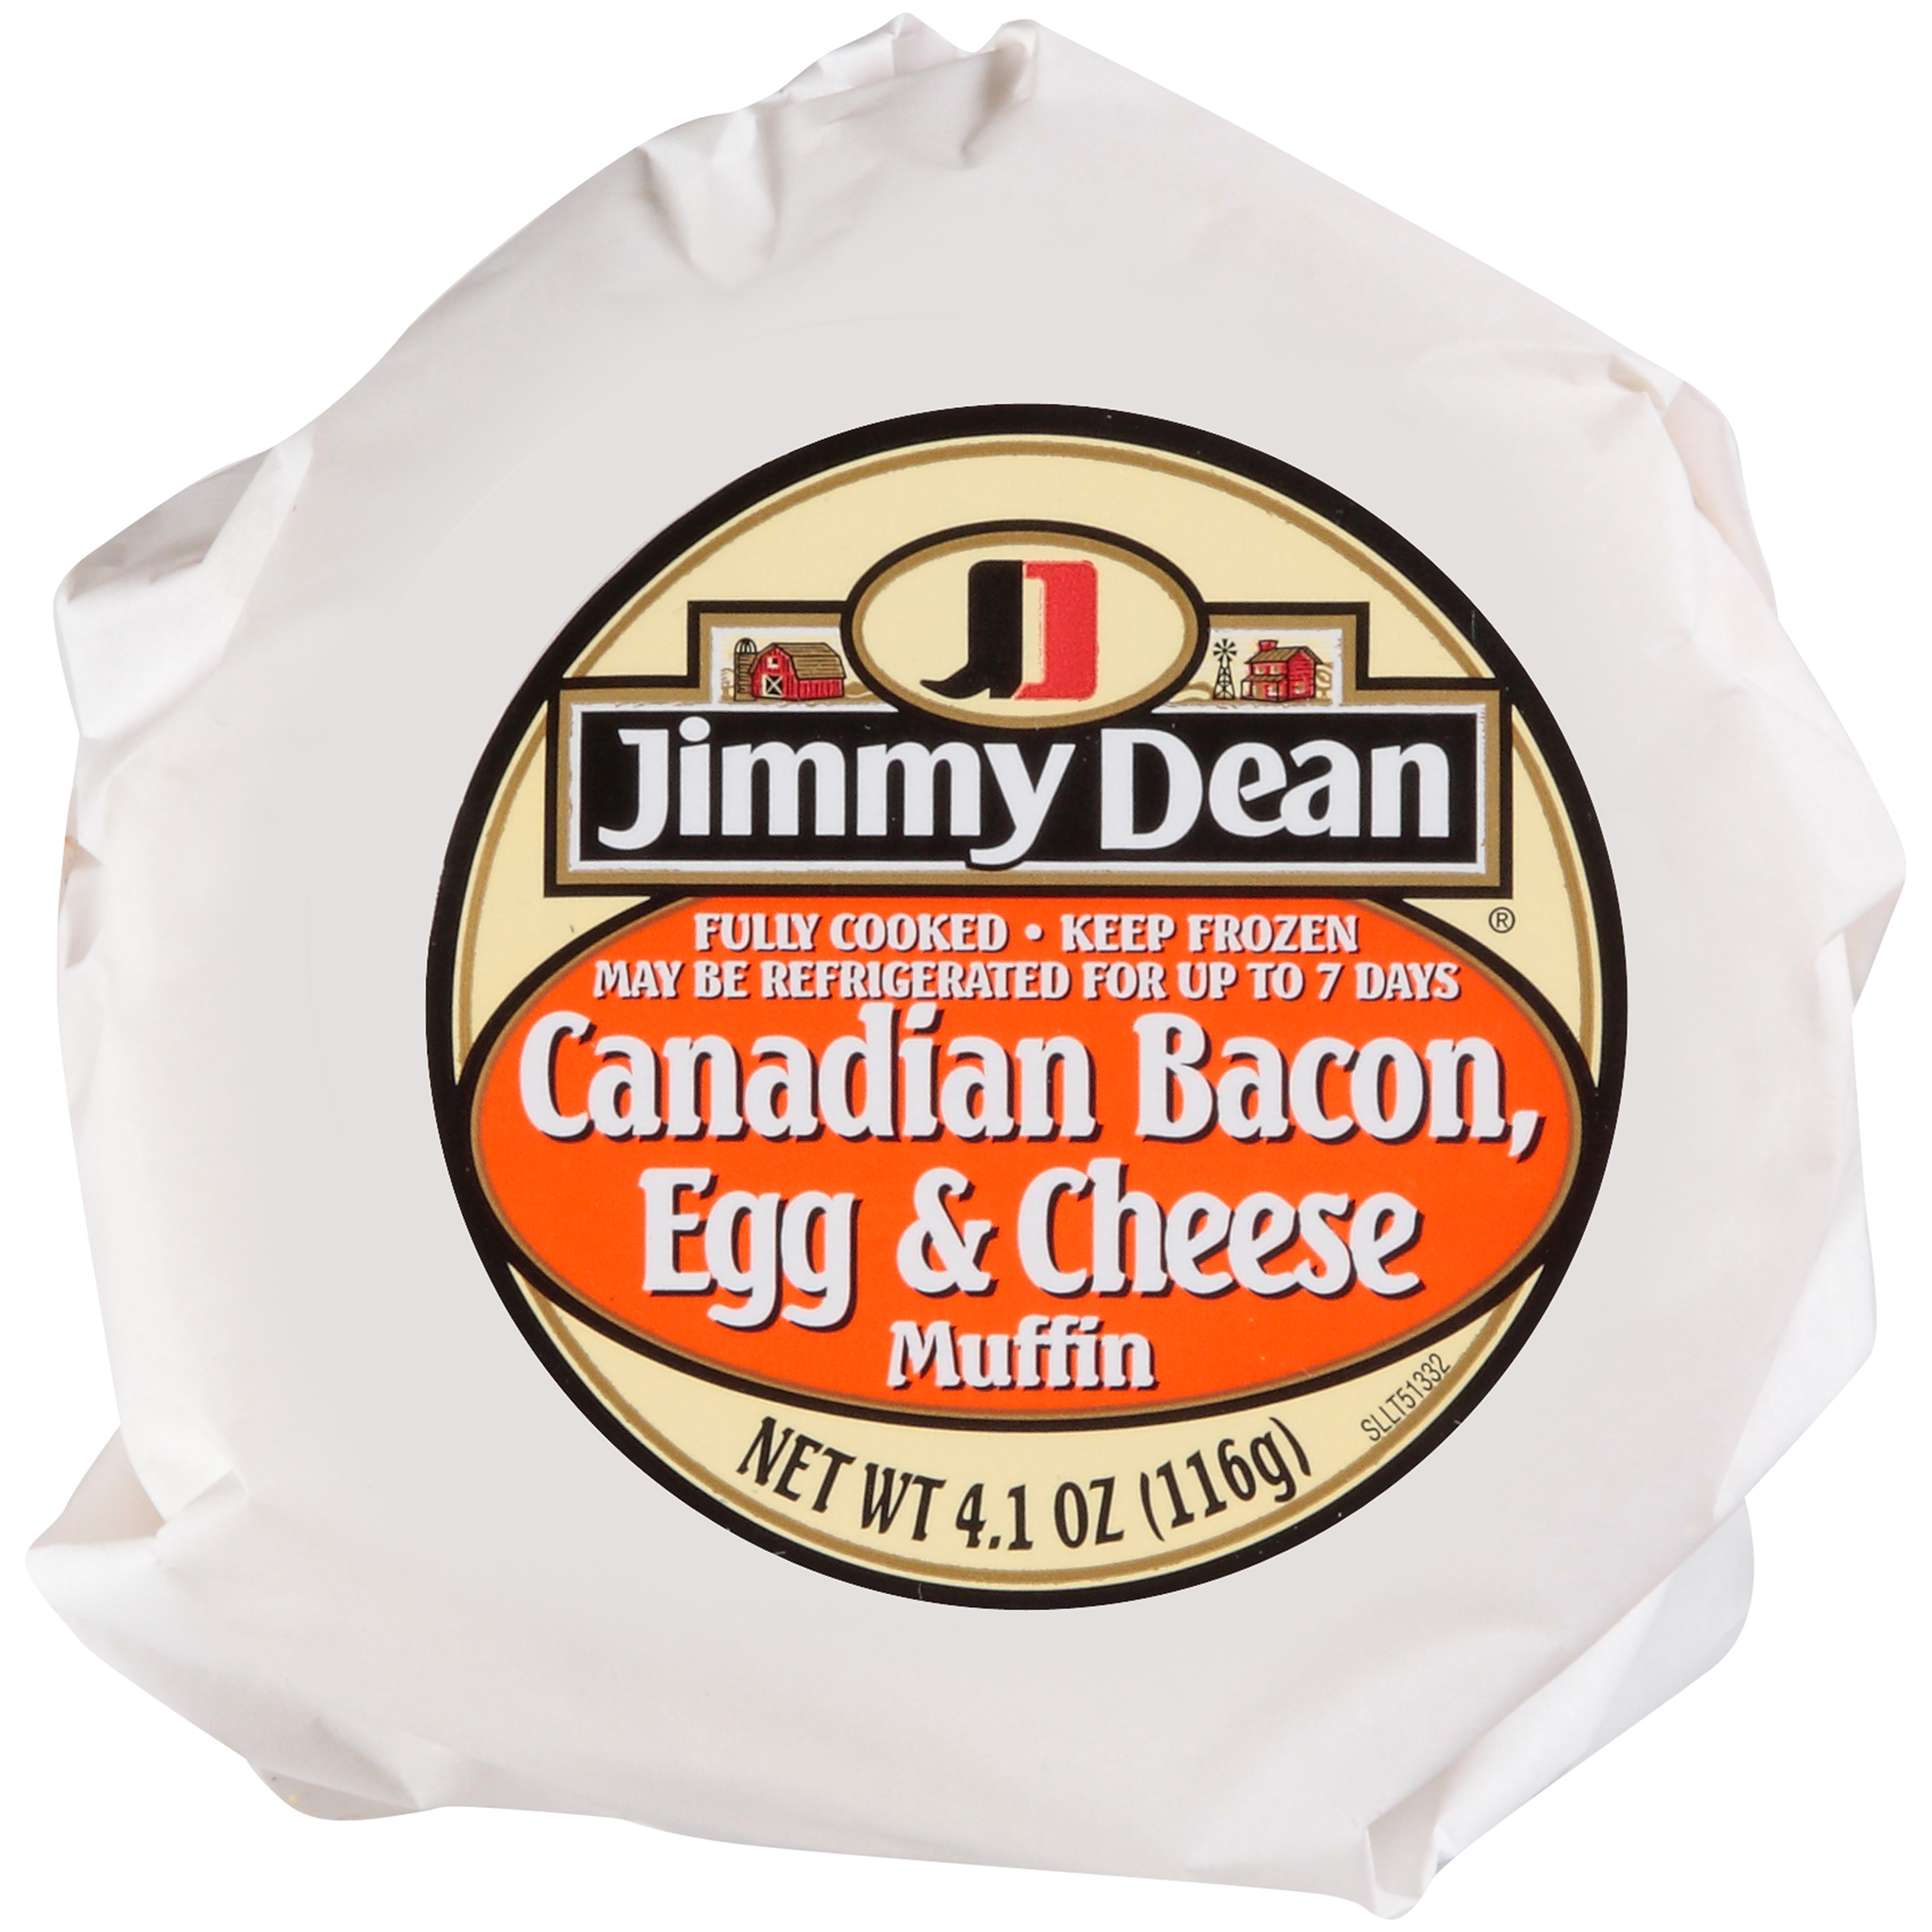 Jimmy Dean Canadian Bacon w/ Egg and Cheese Muffin Sandwich, 4.1 oz., 12 per case